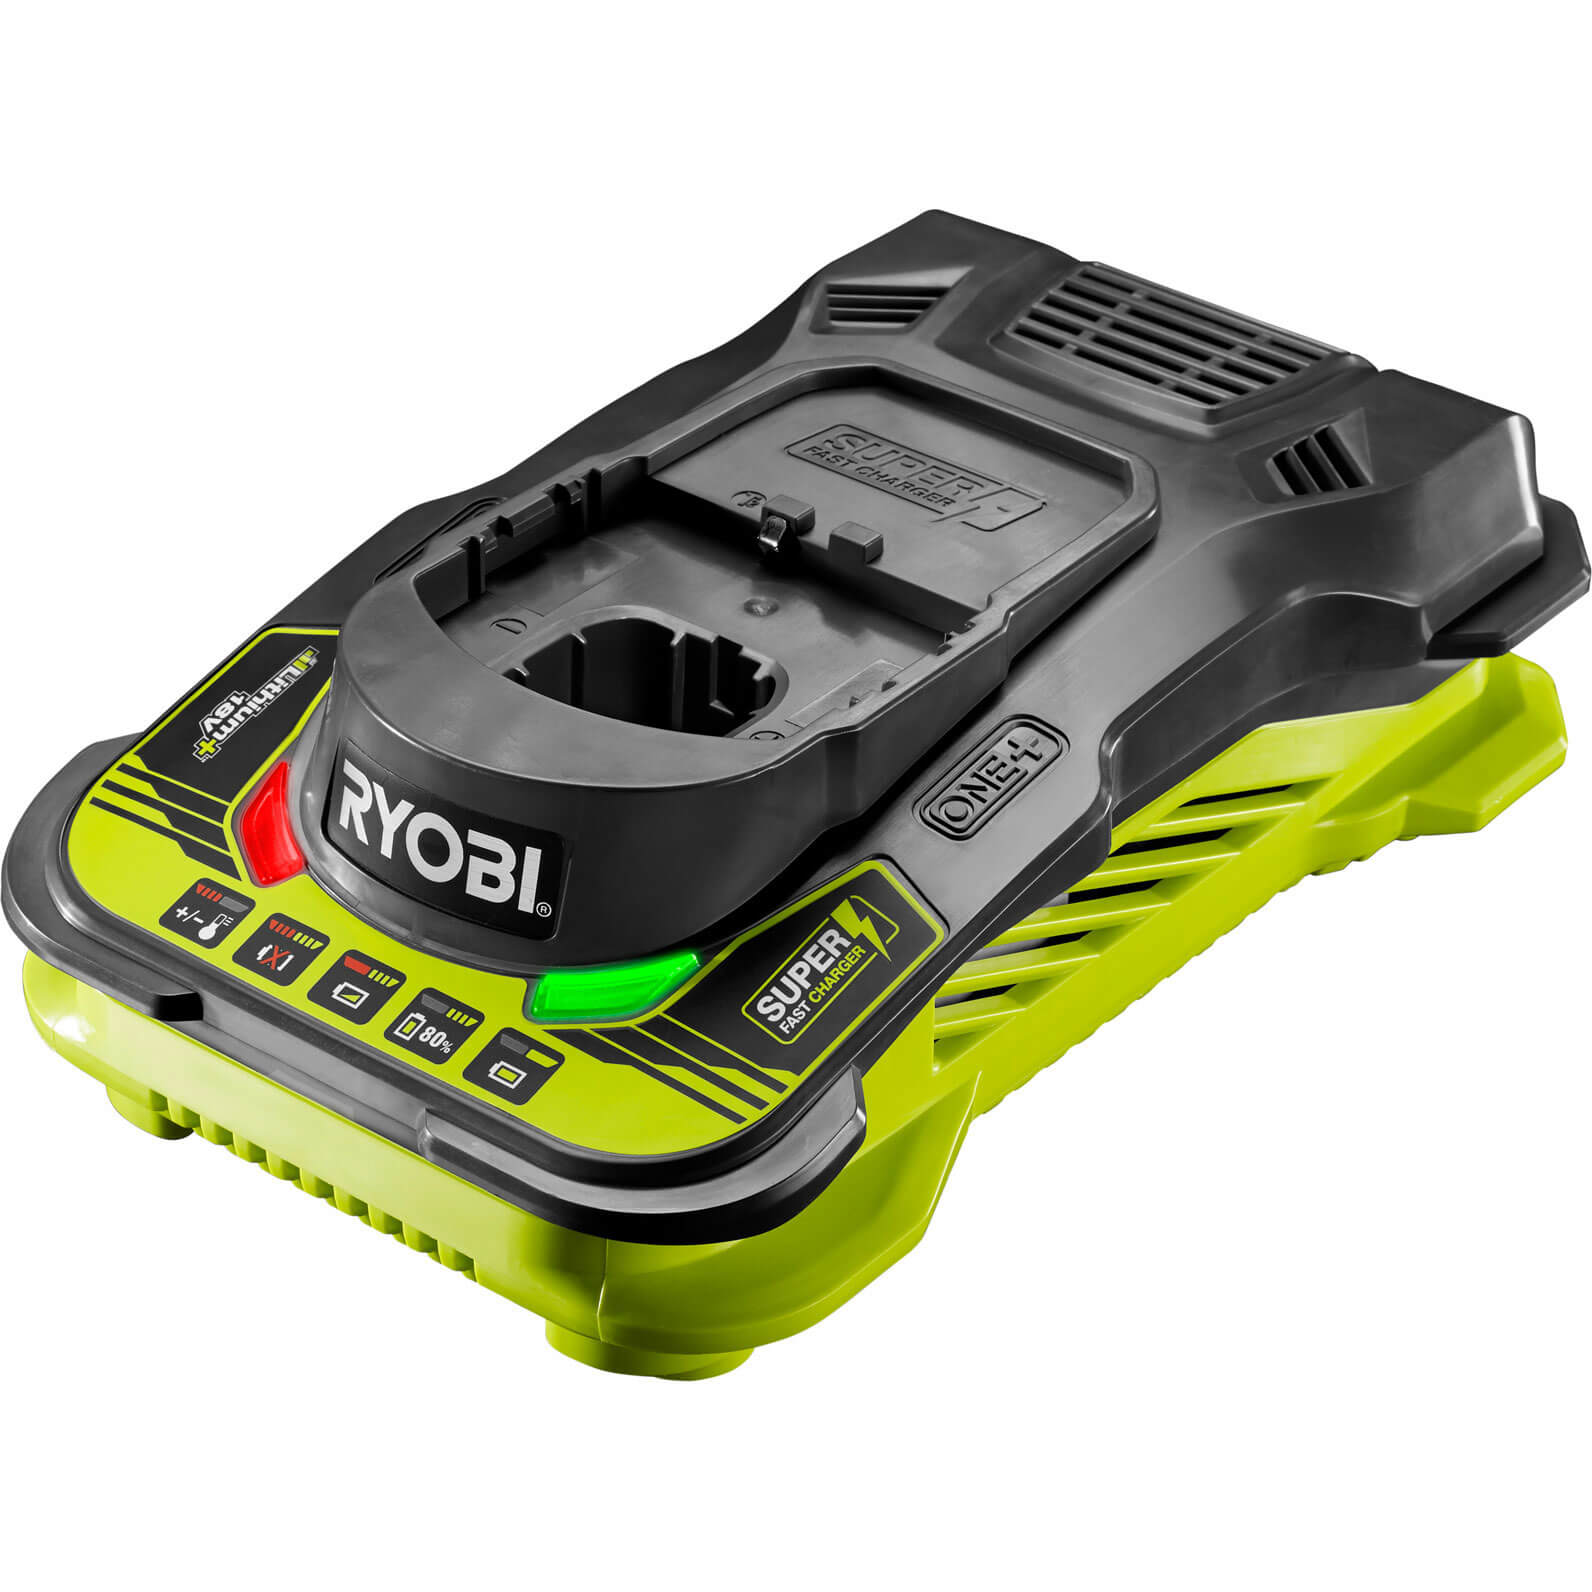 ryobi rc18150 one 18v cordless fast li ion battery charger. Black Bedroom Furniture Sets. Home Design Ideas